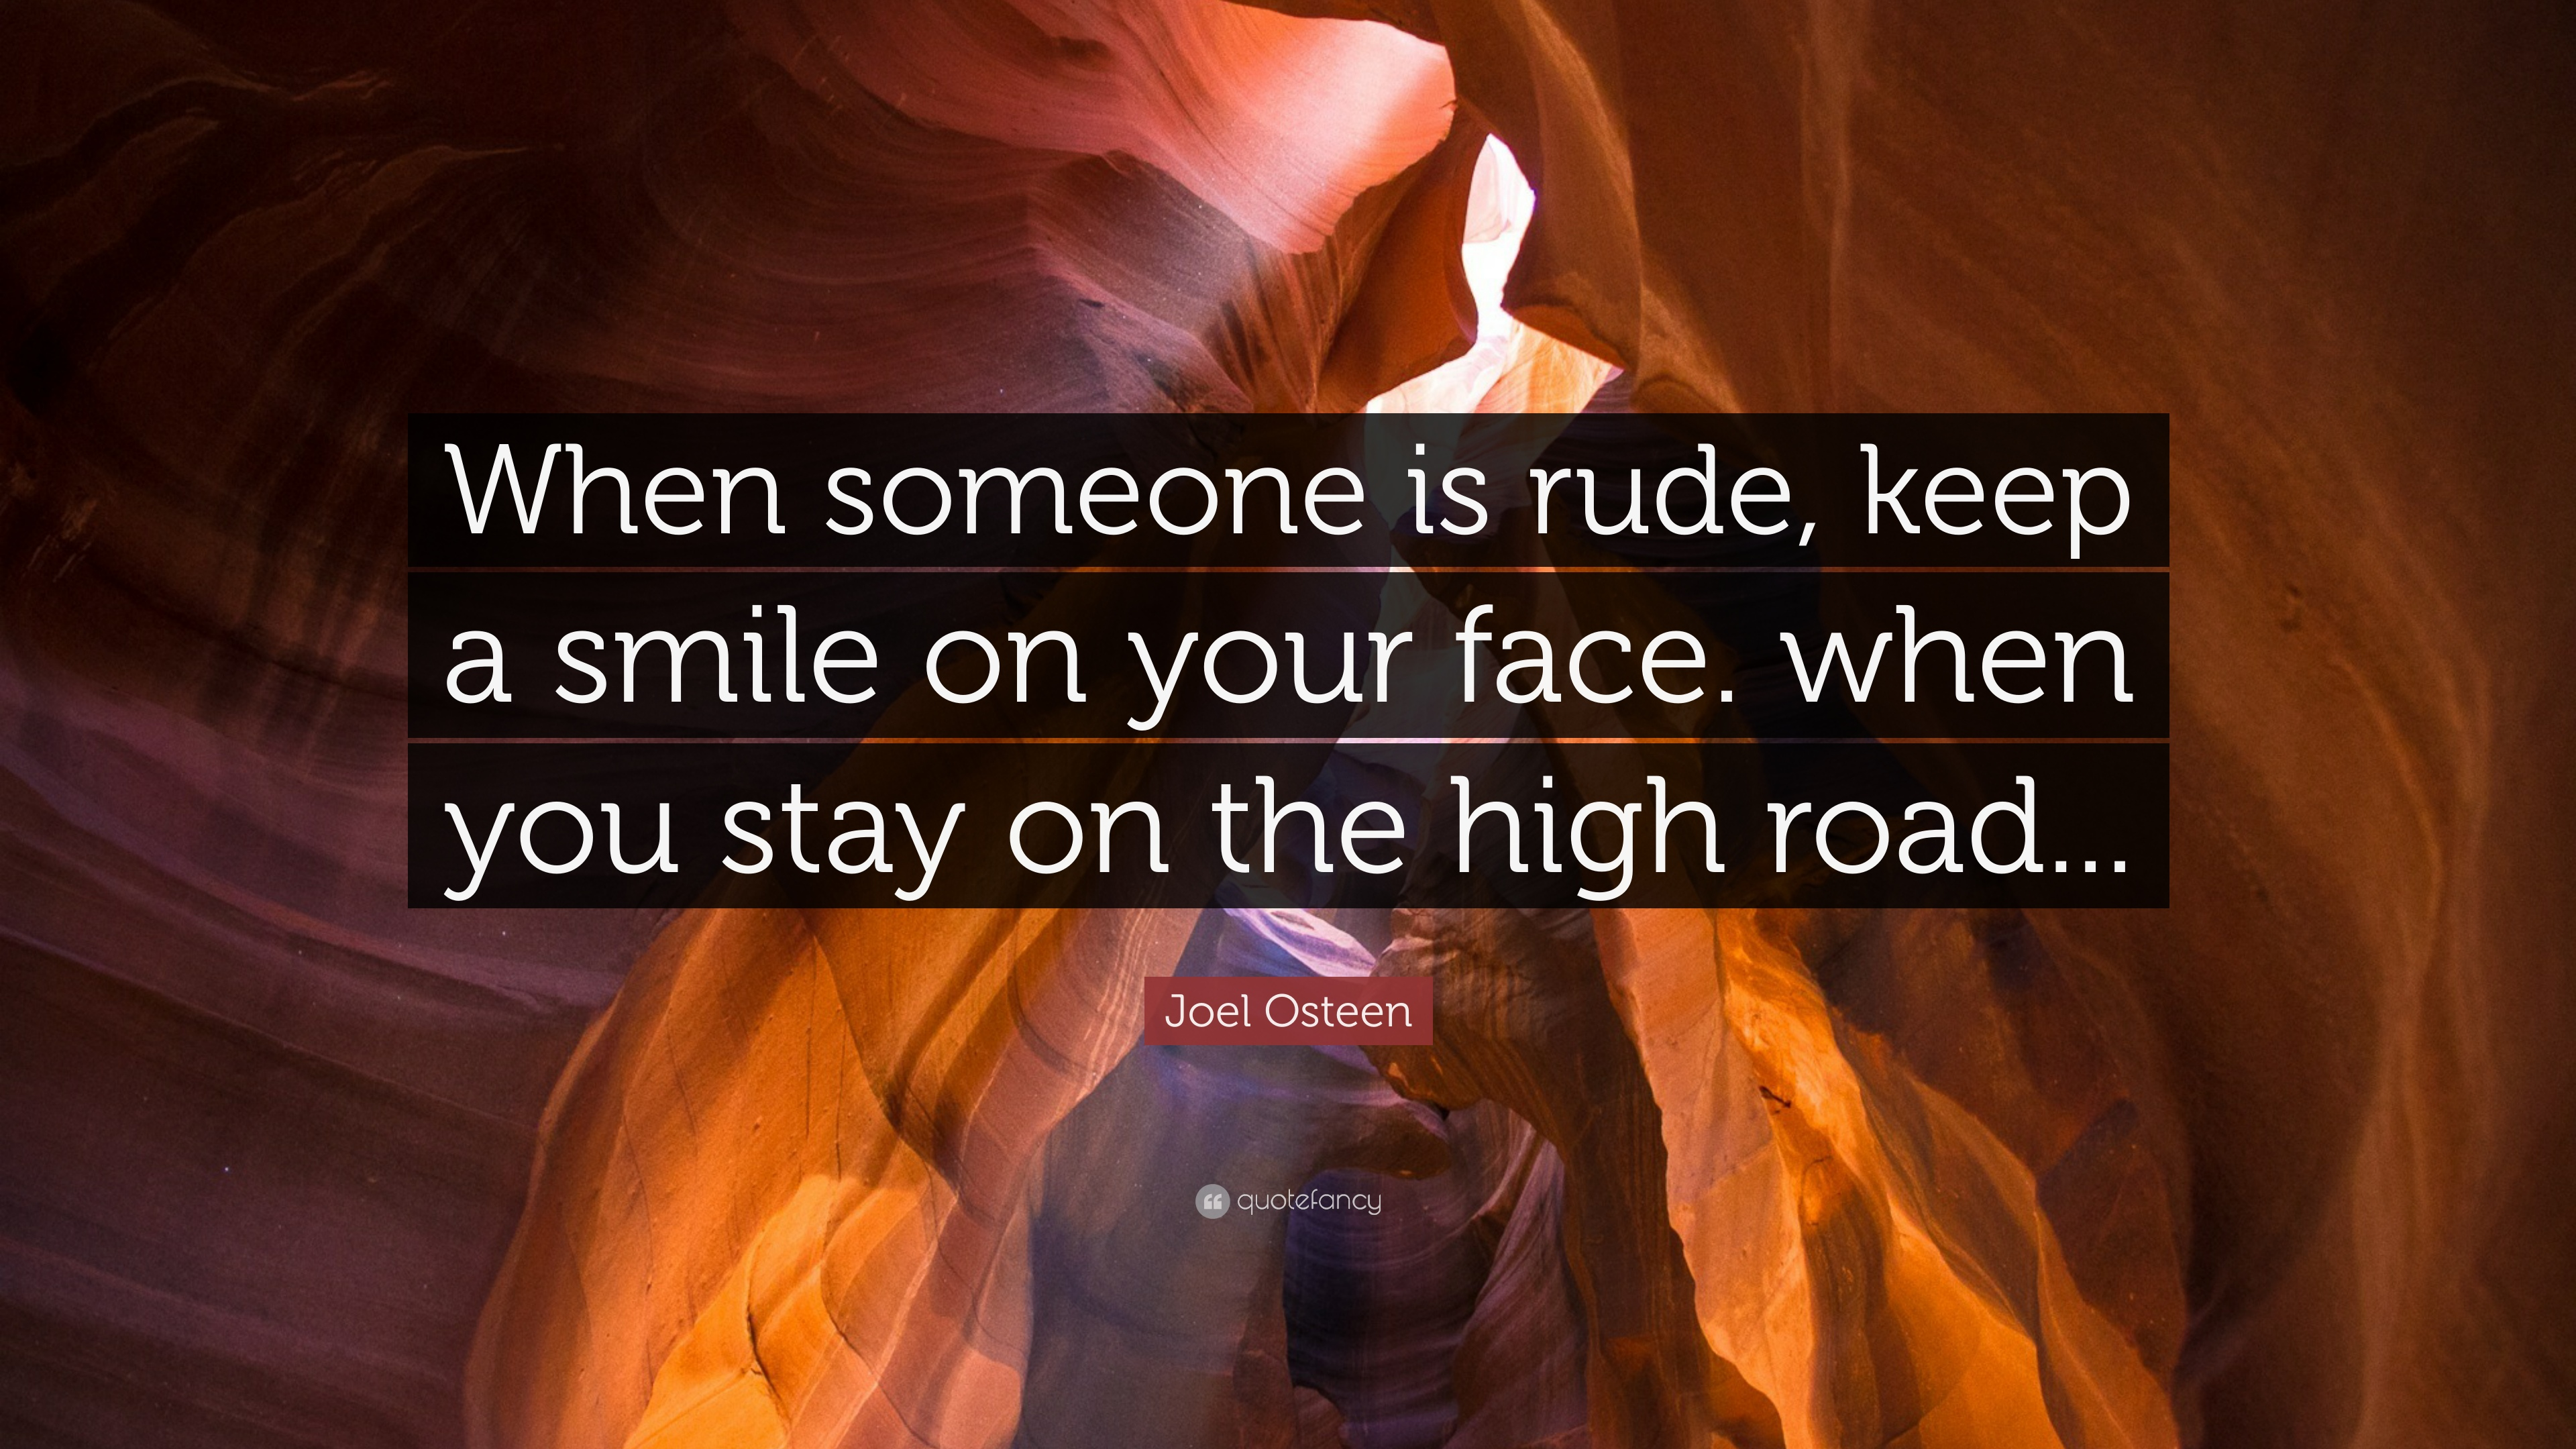 Joel Osteen Quote When Someone Is Rude Keep A Smile On Your Face